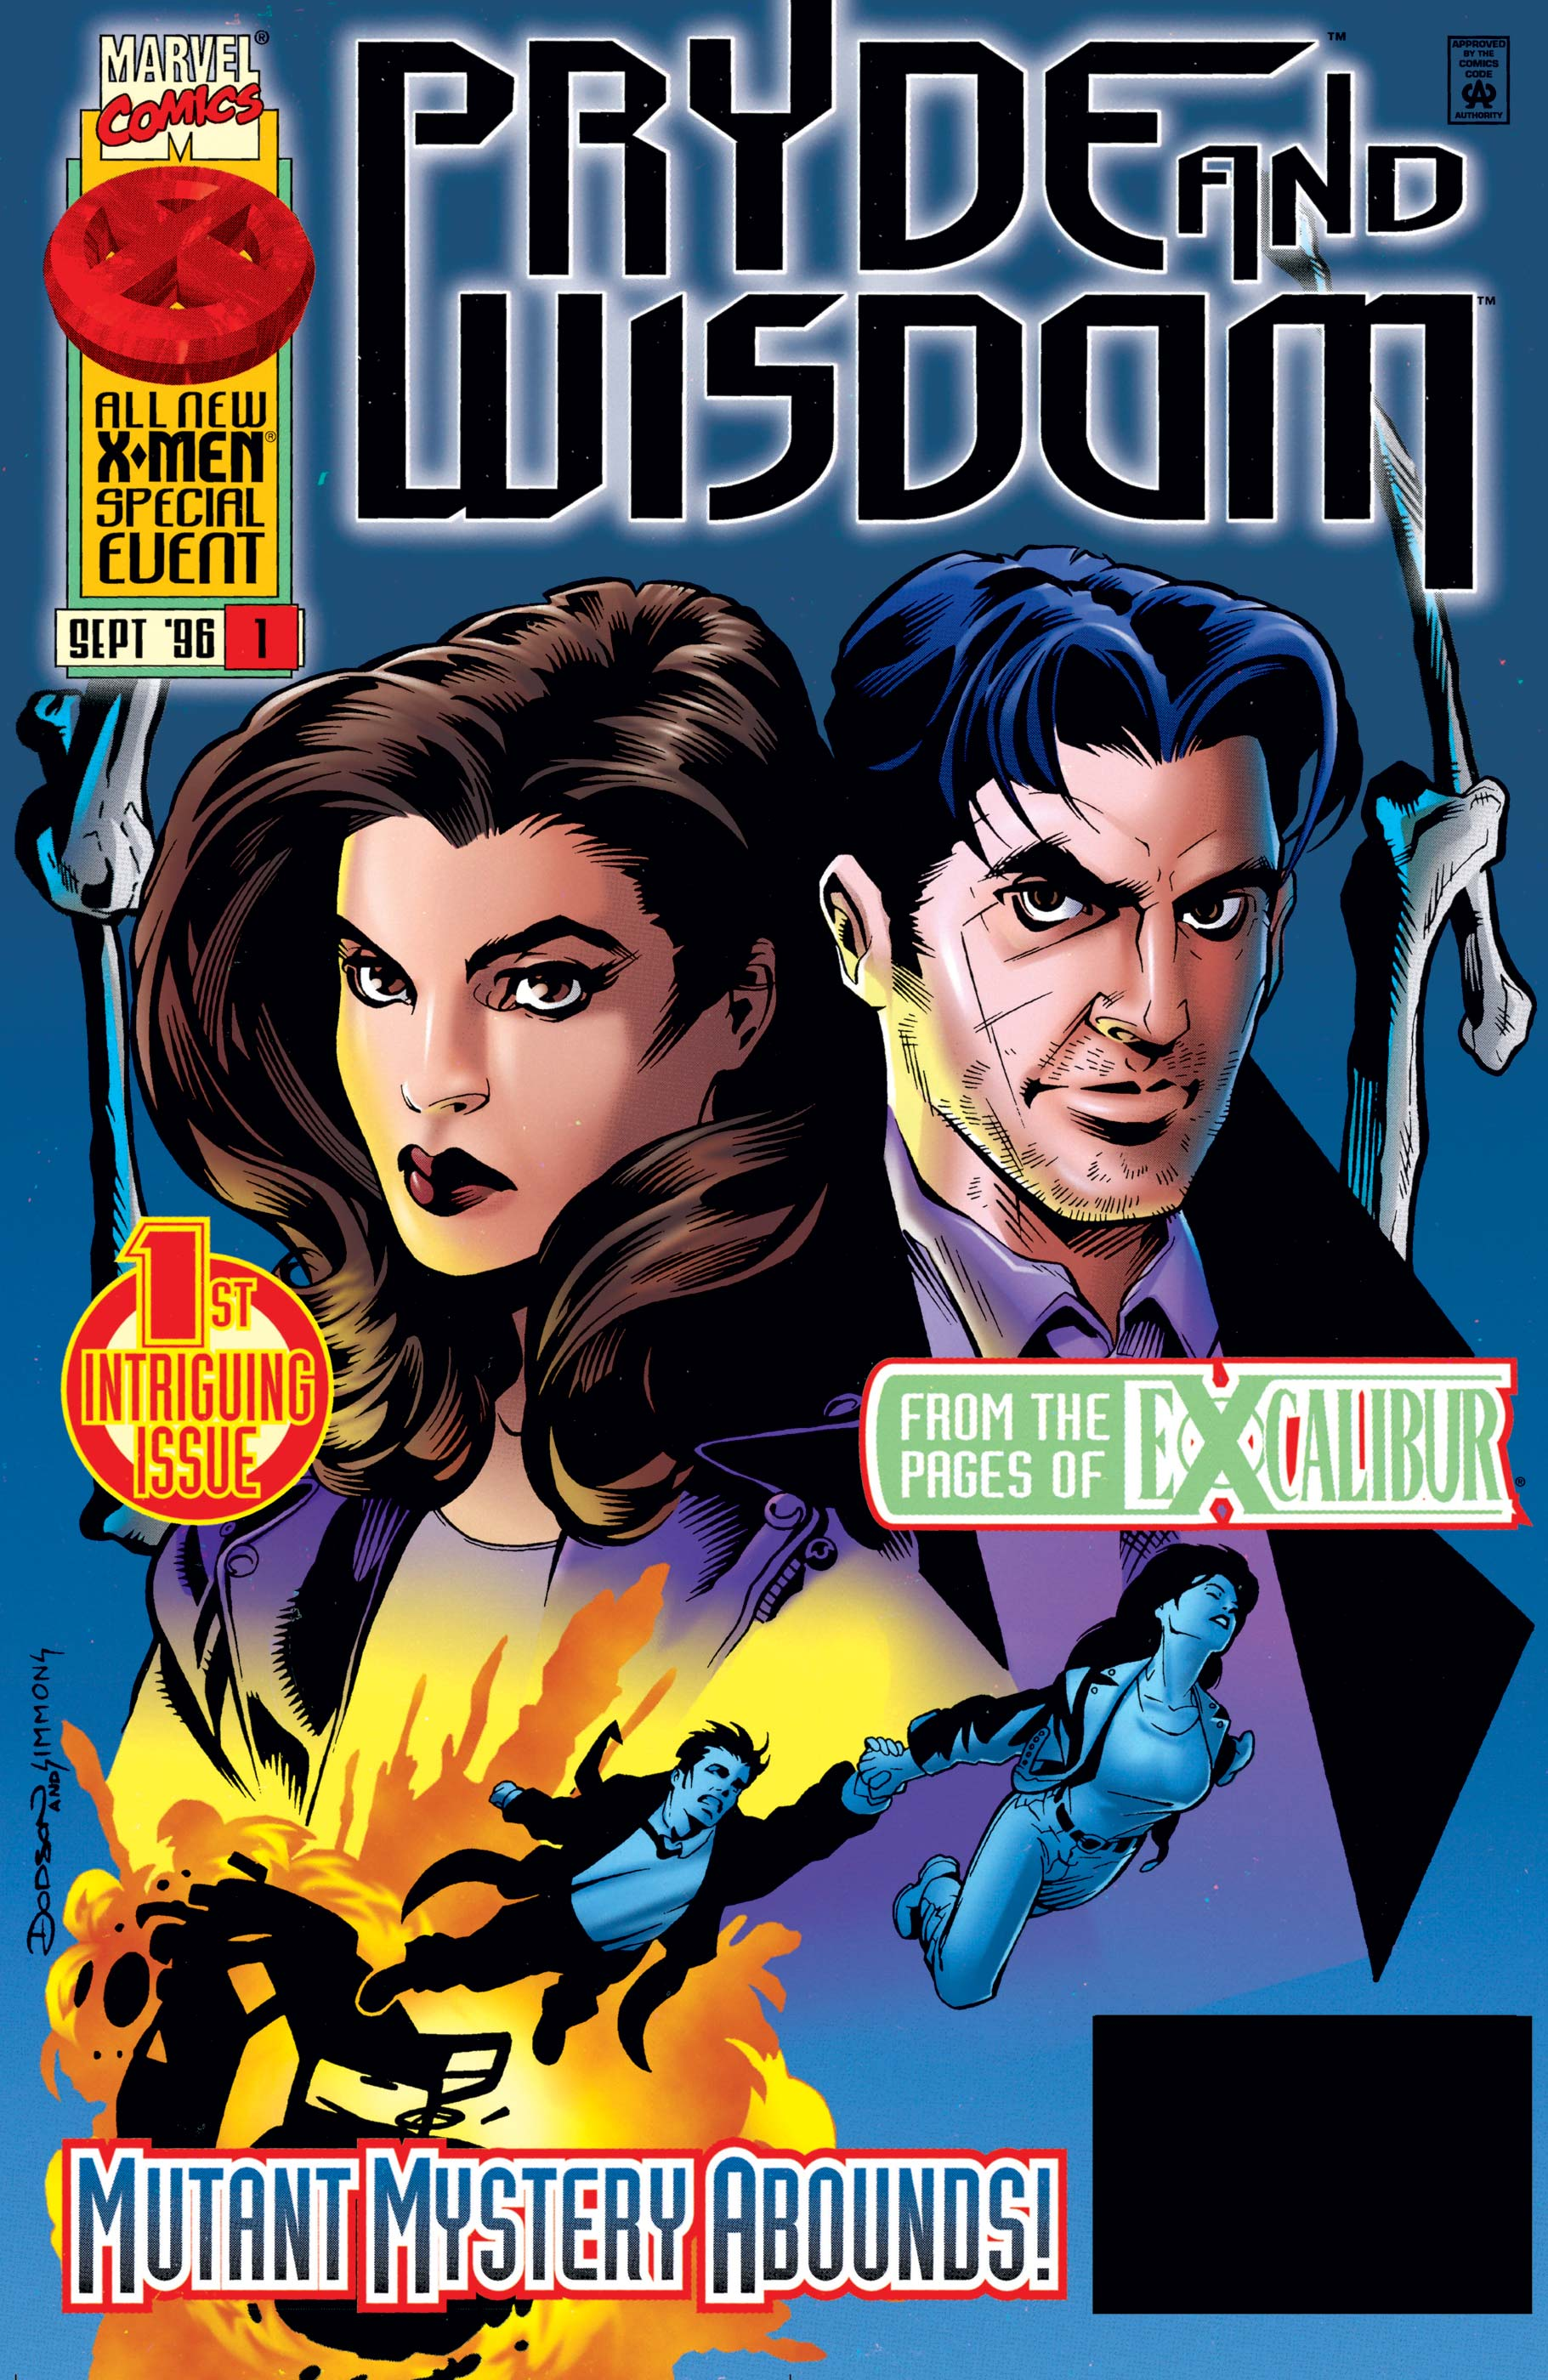 Pryde and Wisdom (1996) #1